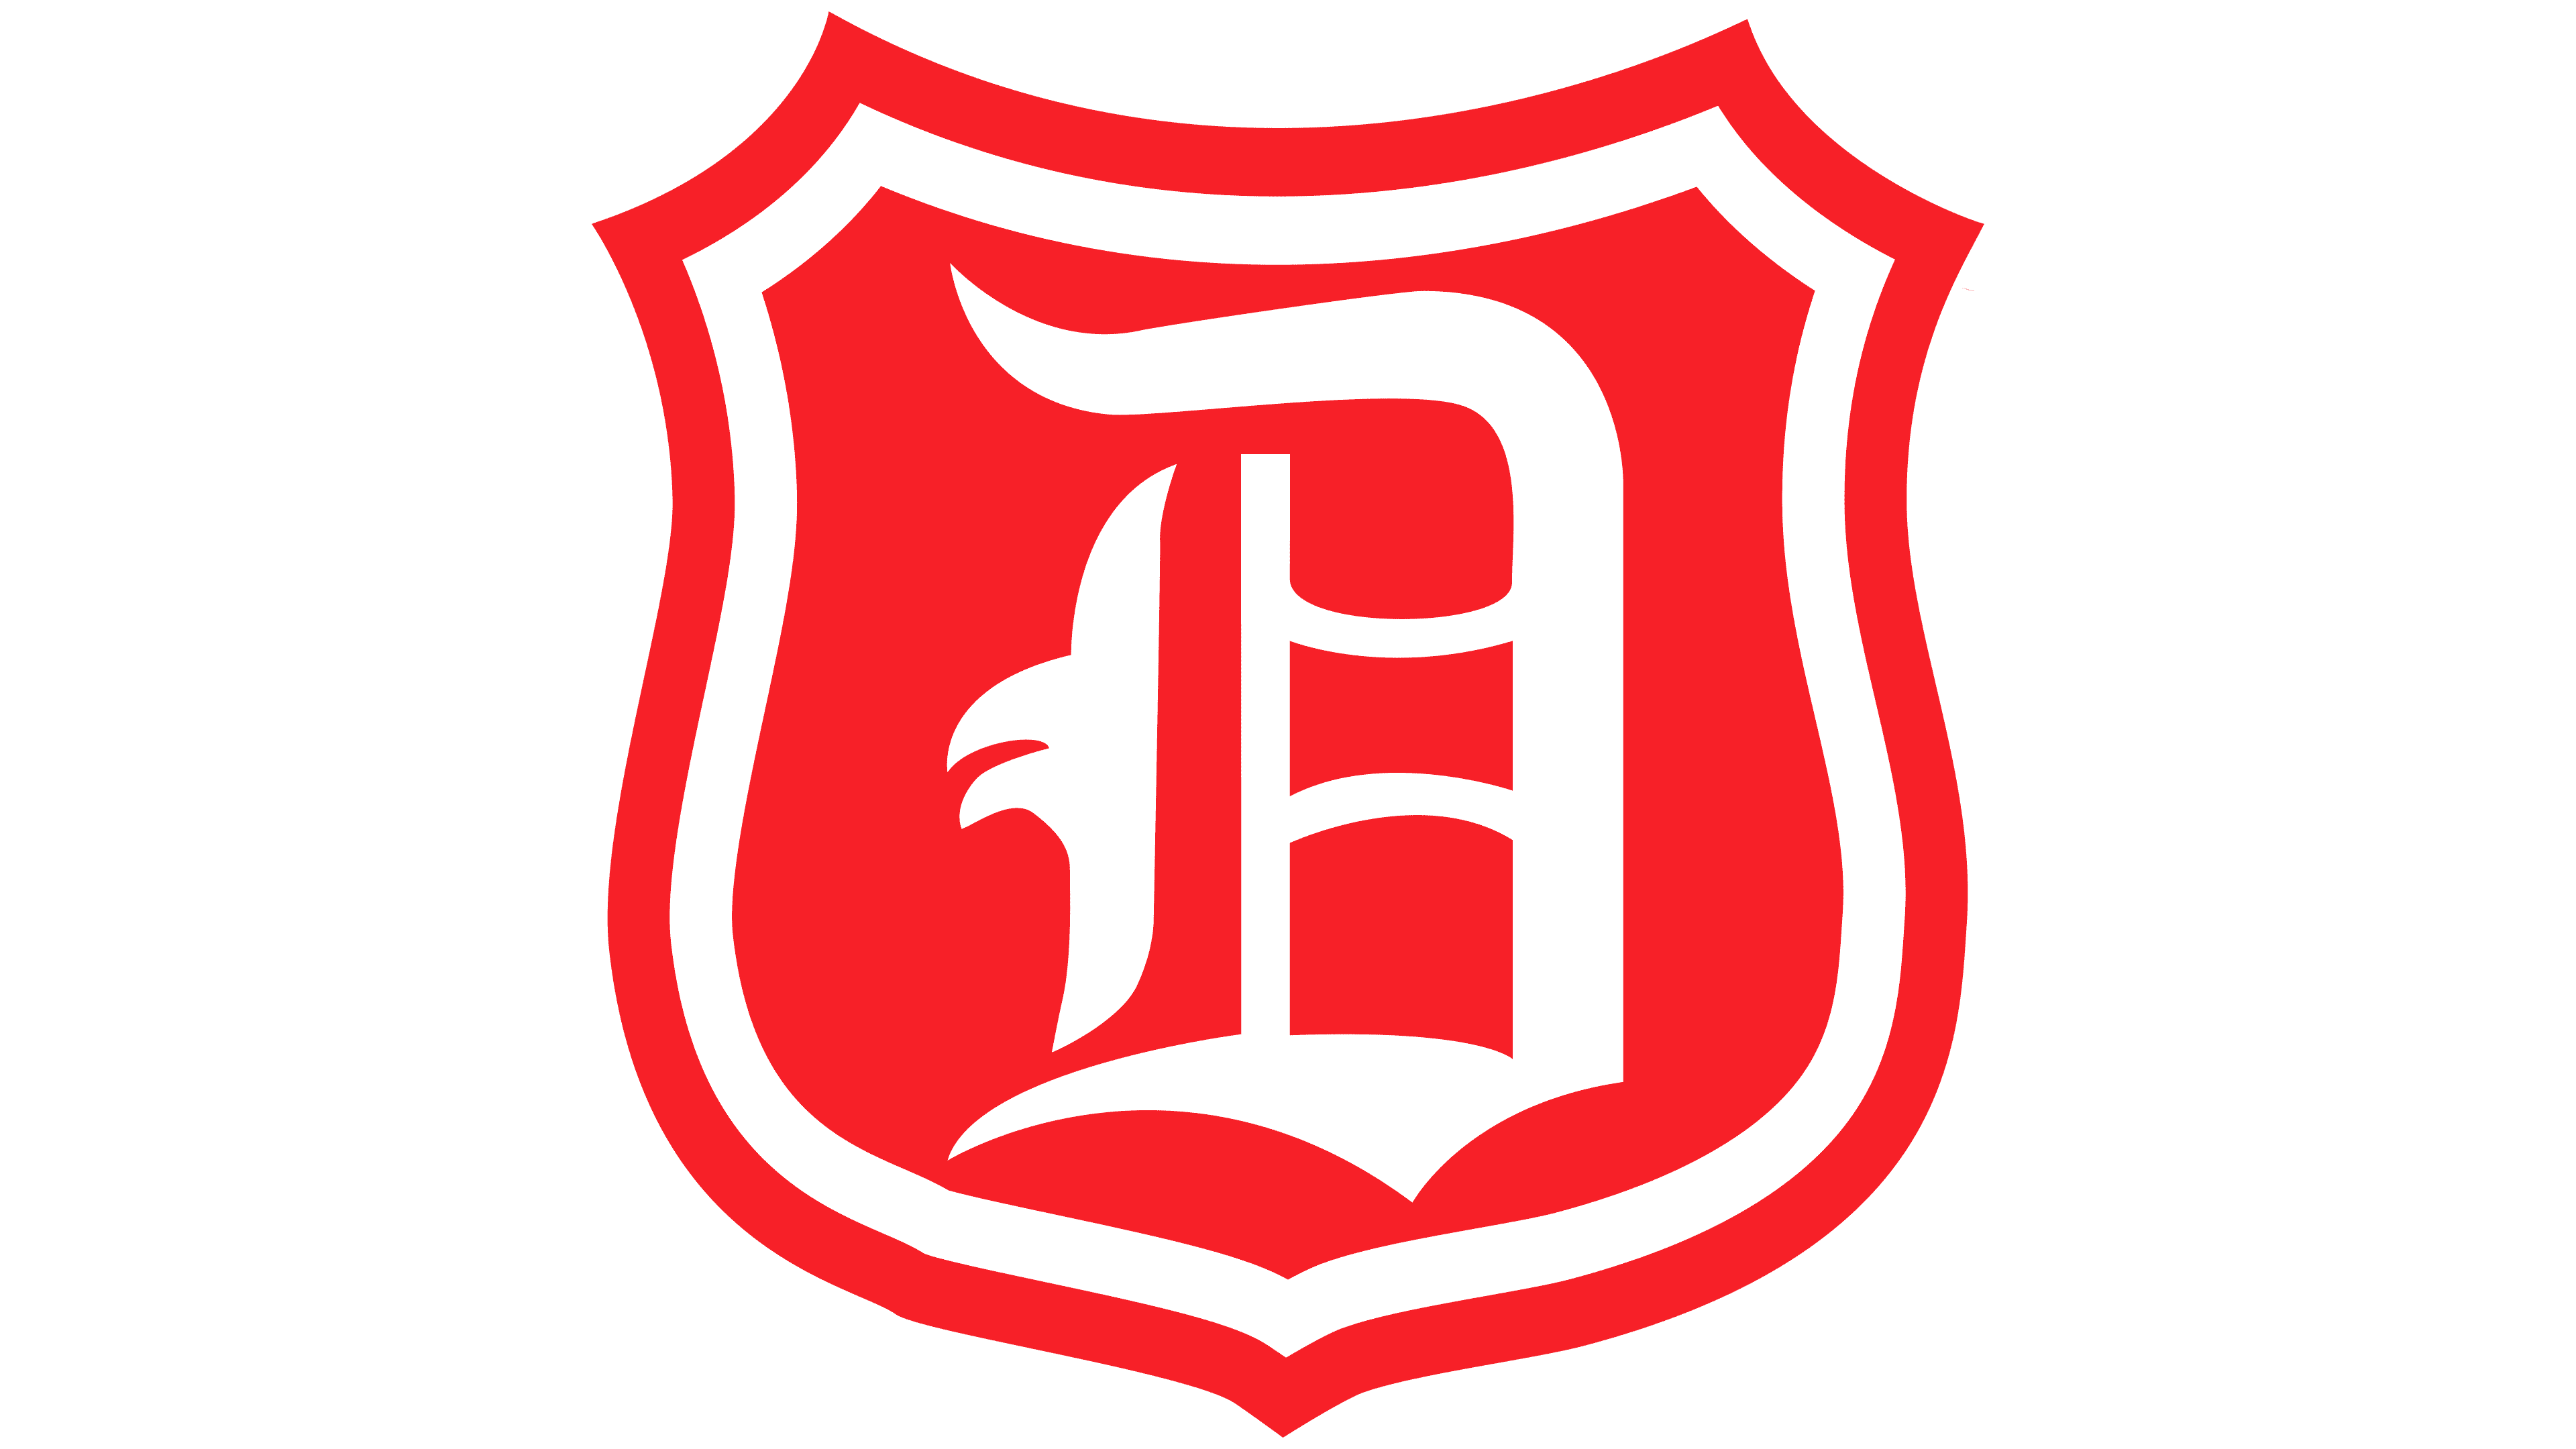 Detroit Red Wings Logo History The Most Famous Brands And Company Logos In The World